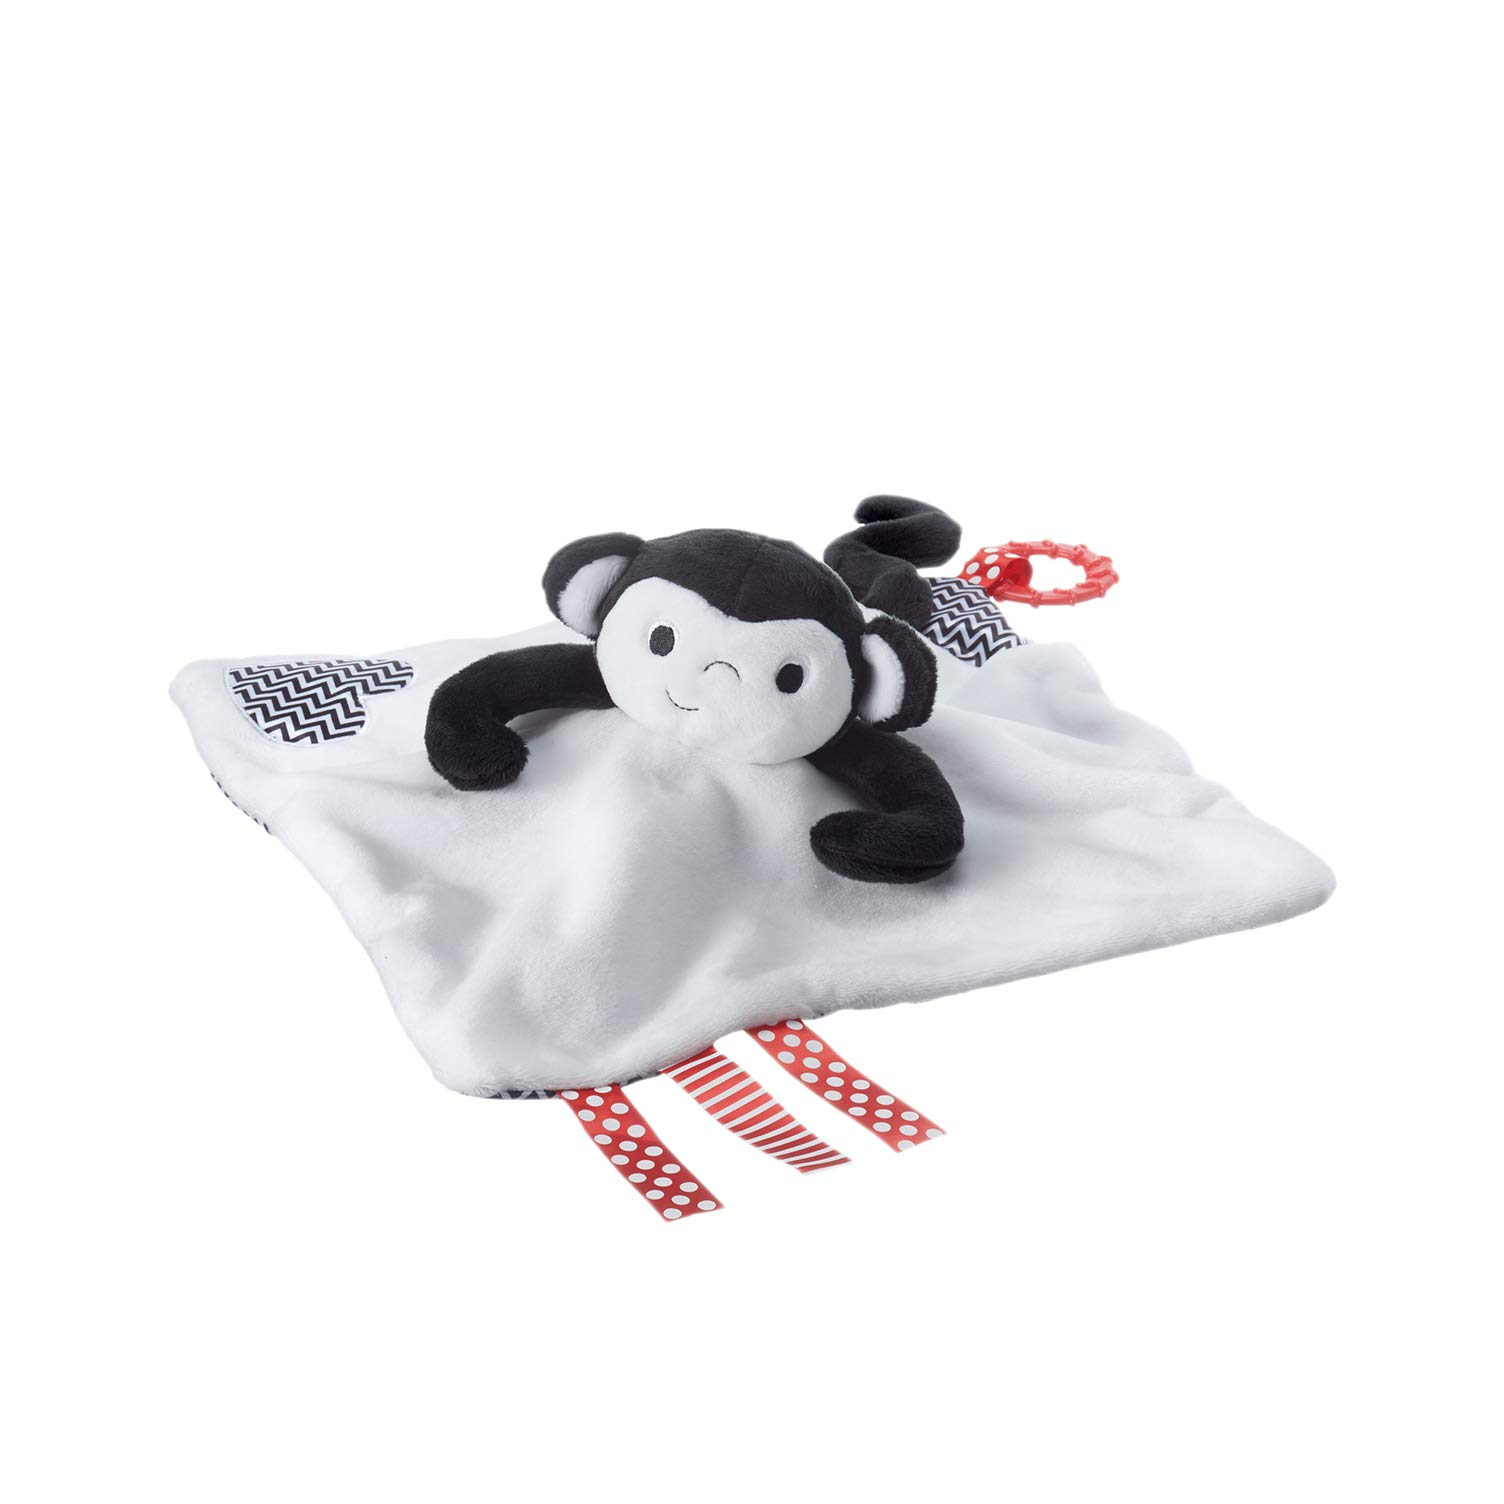 Tommee Tippee 3 in 1 Lovey, Soft Security Blanket, Teether and Puppet – Machine washable, Marco Monkey, 0+ months